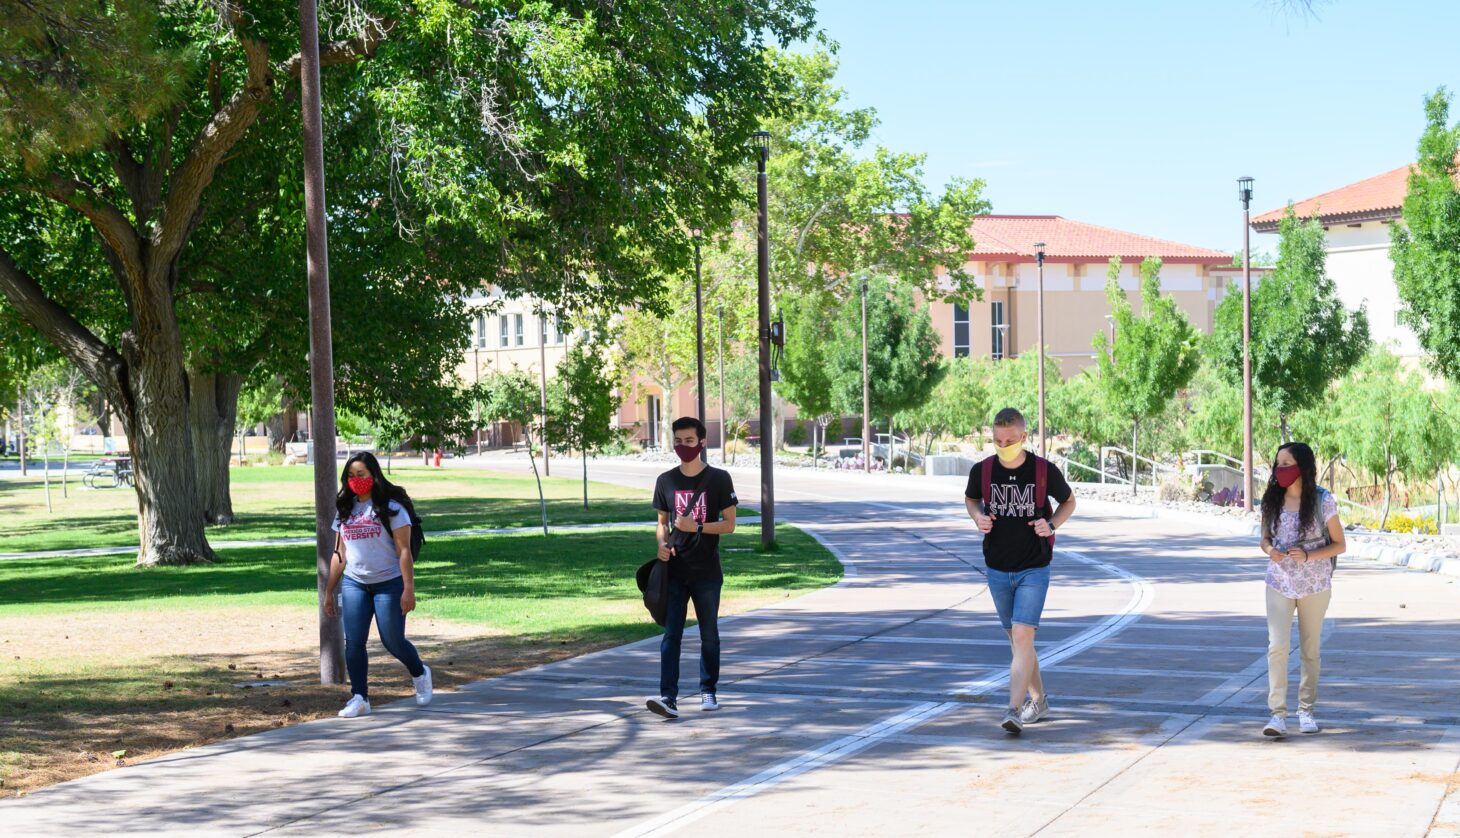 New Mexico State University is one of 16 institutions participating in the Association of Public and Land-grant Universities' Powered by Publics initiative to receive additional investment and support to advance student-centered transformation.      NMSU photo by Josh Bachman